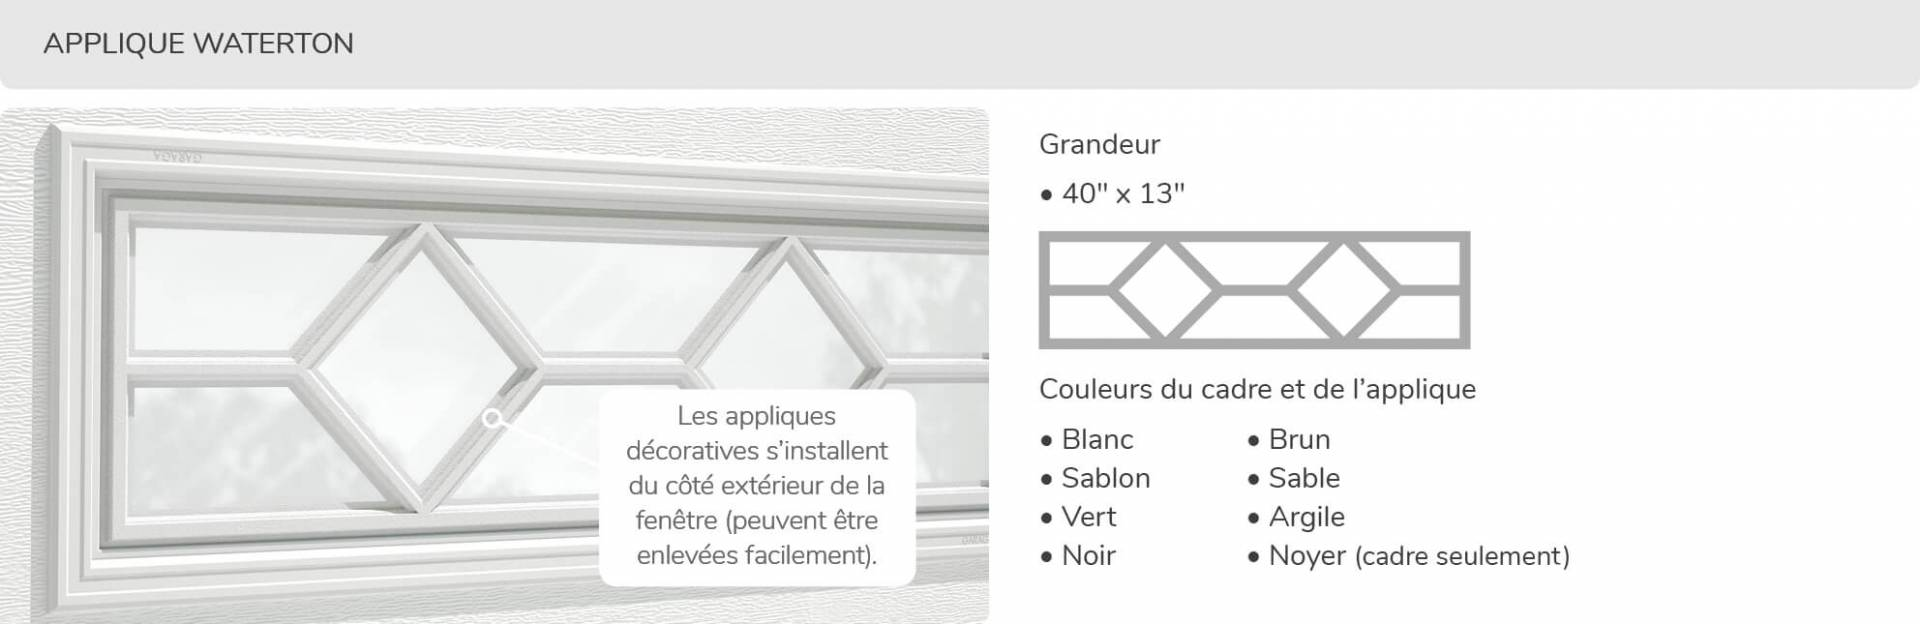 Applique Waterton, 40' x 13', disponible pour la porte R-16